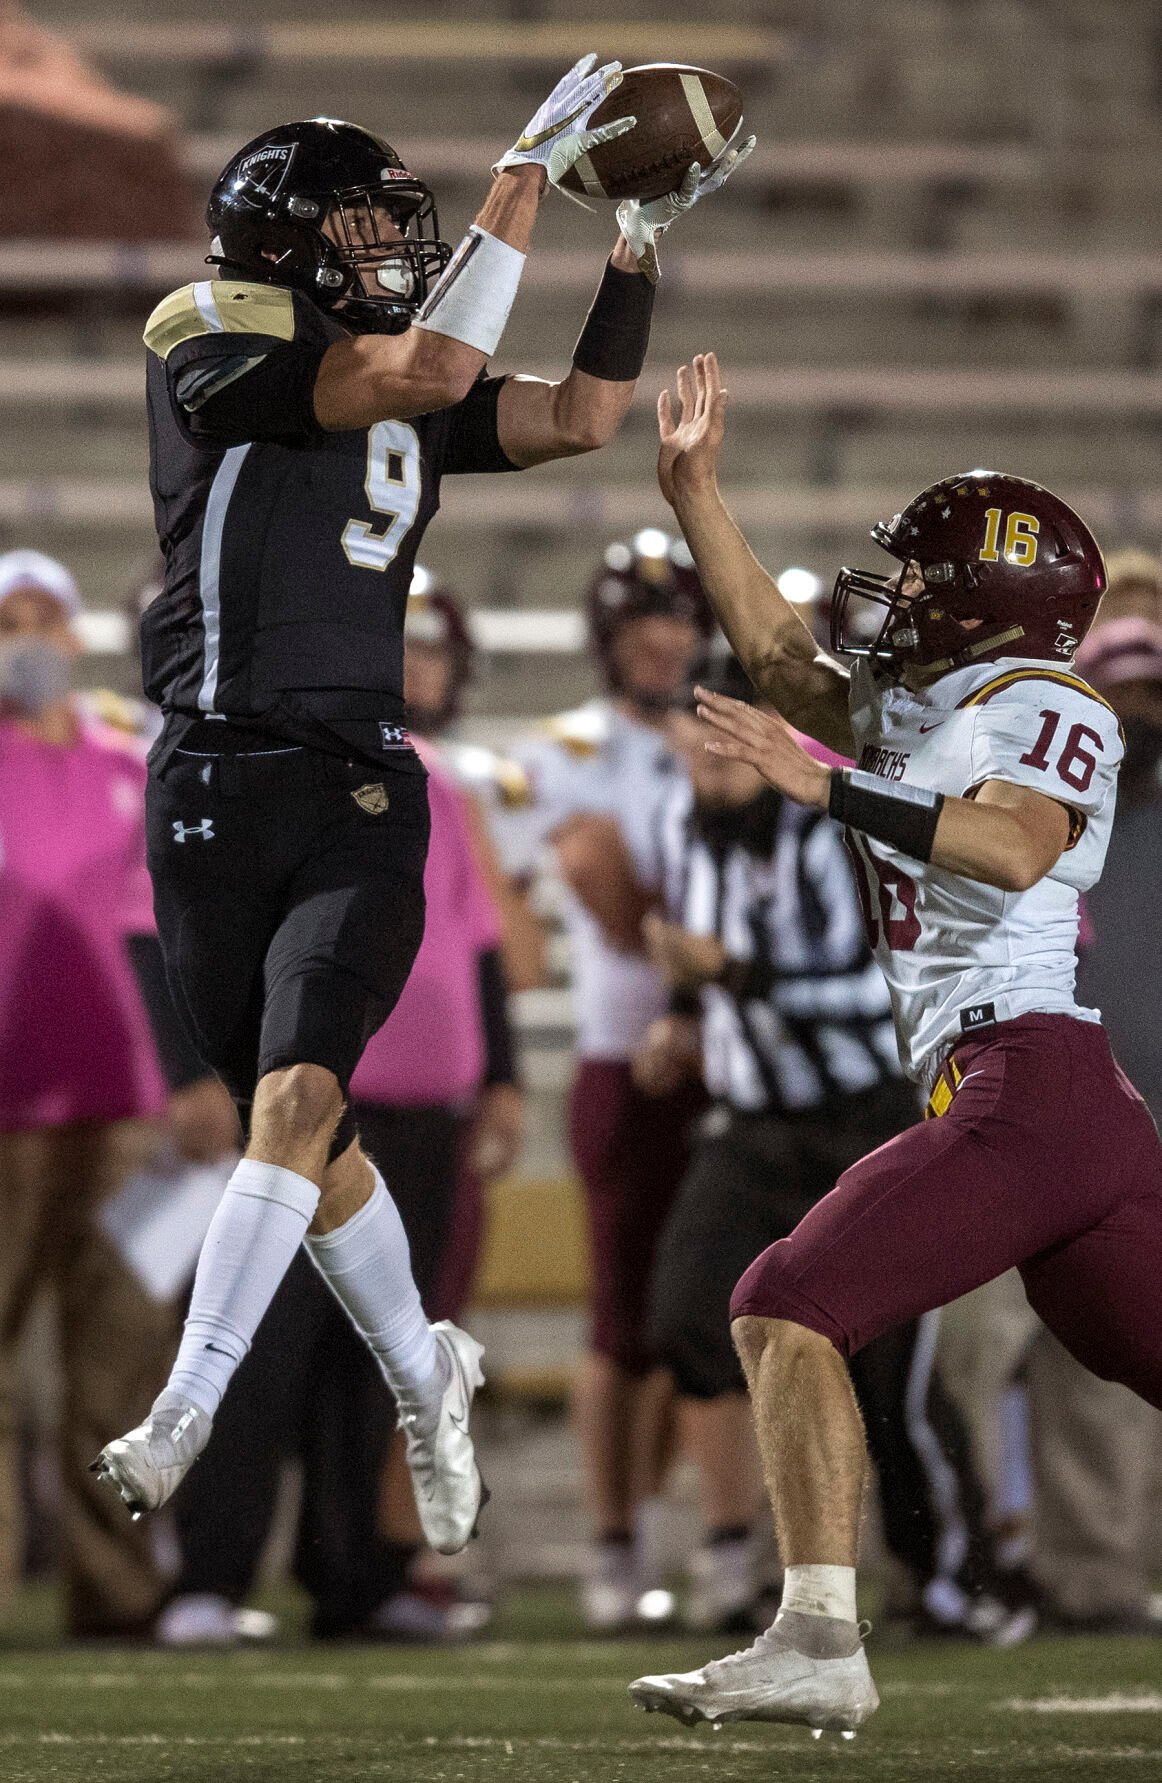 Lincoln Southeast vs. Papillion-La Vista, 10.2